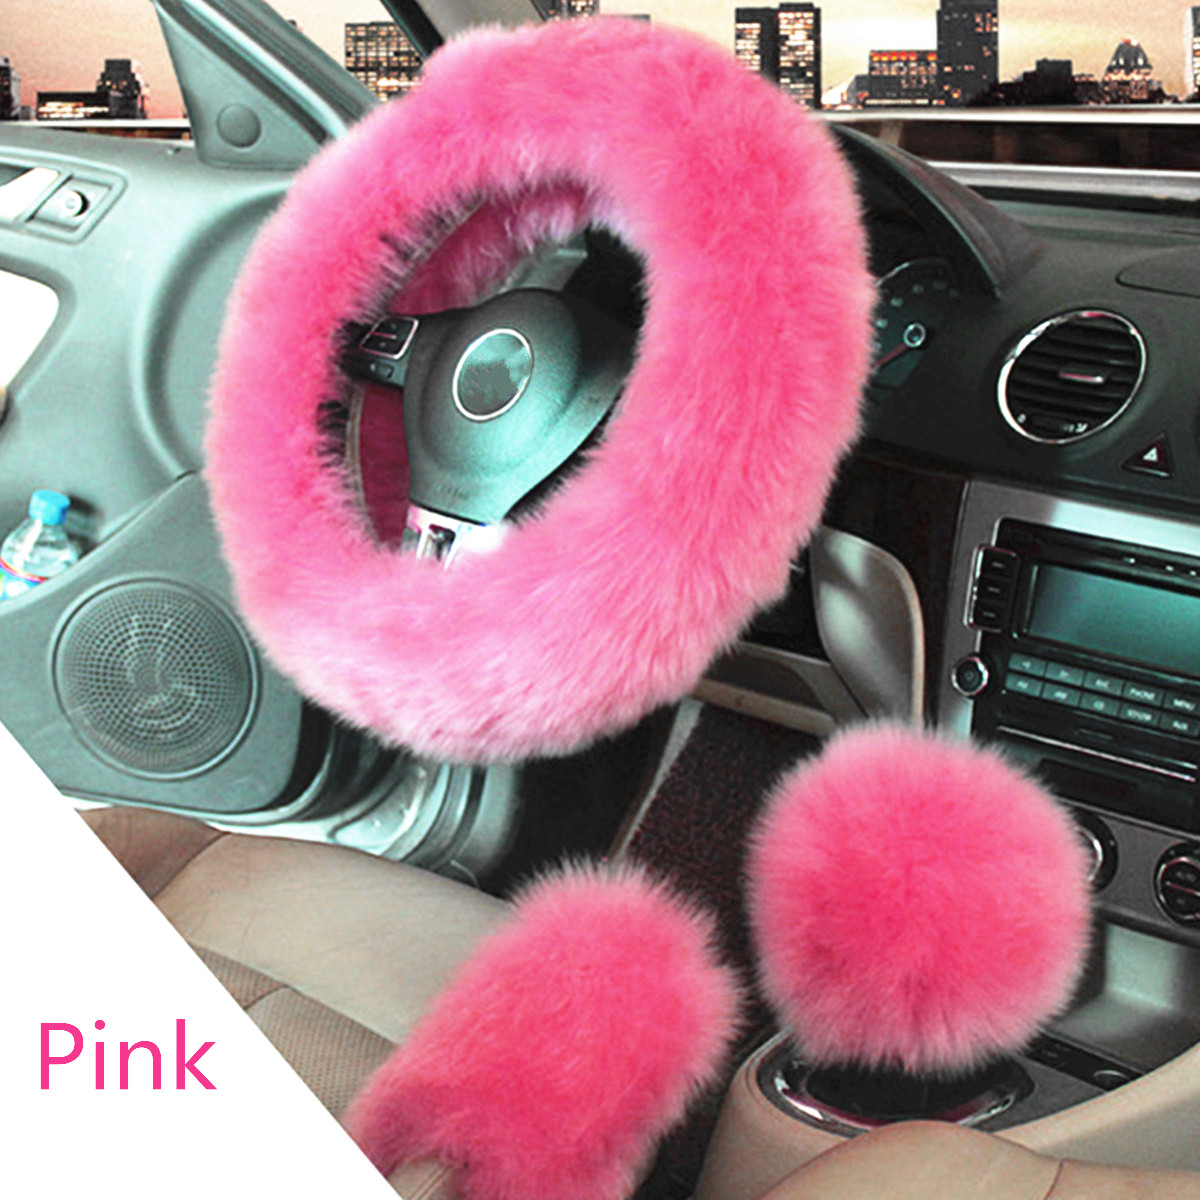 3 in 1 Wool Car Steering Wheel Cover + Gear Knob Shifter Parking Brake Set Furry Steering Wheel Cover Car Accessory Decor 12 Colors